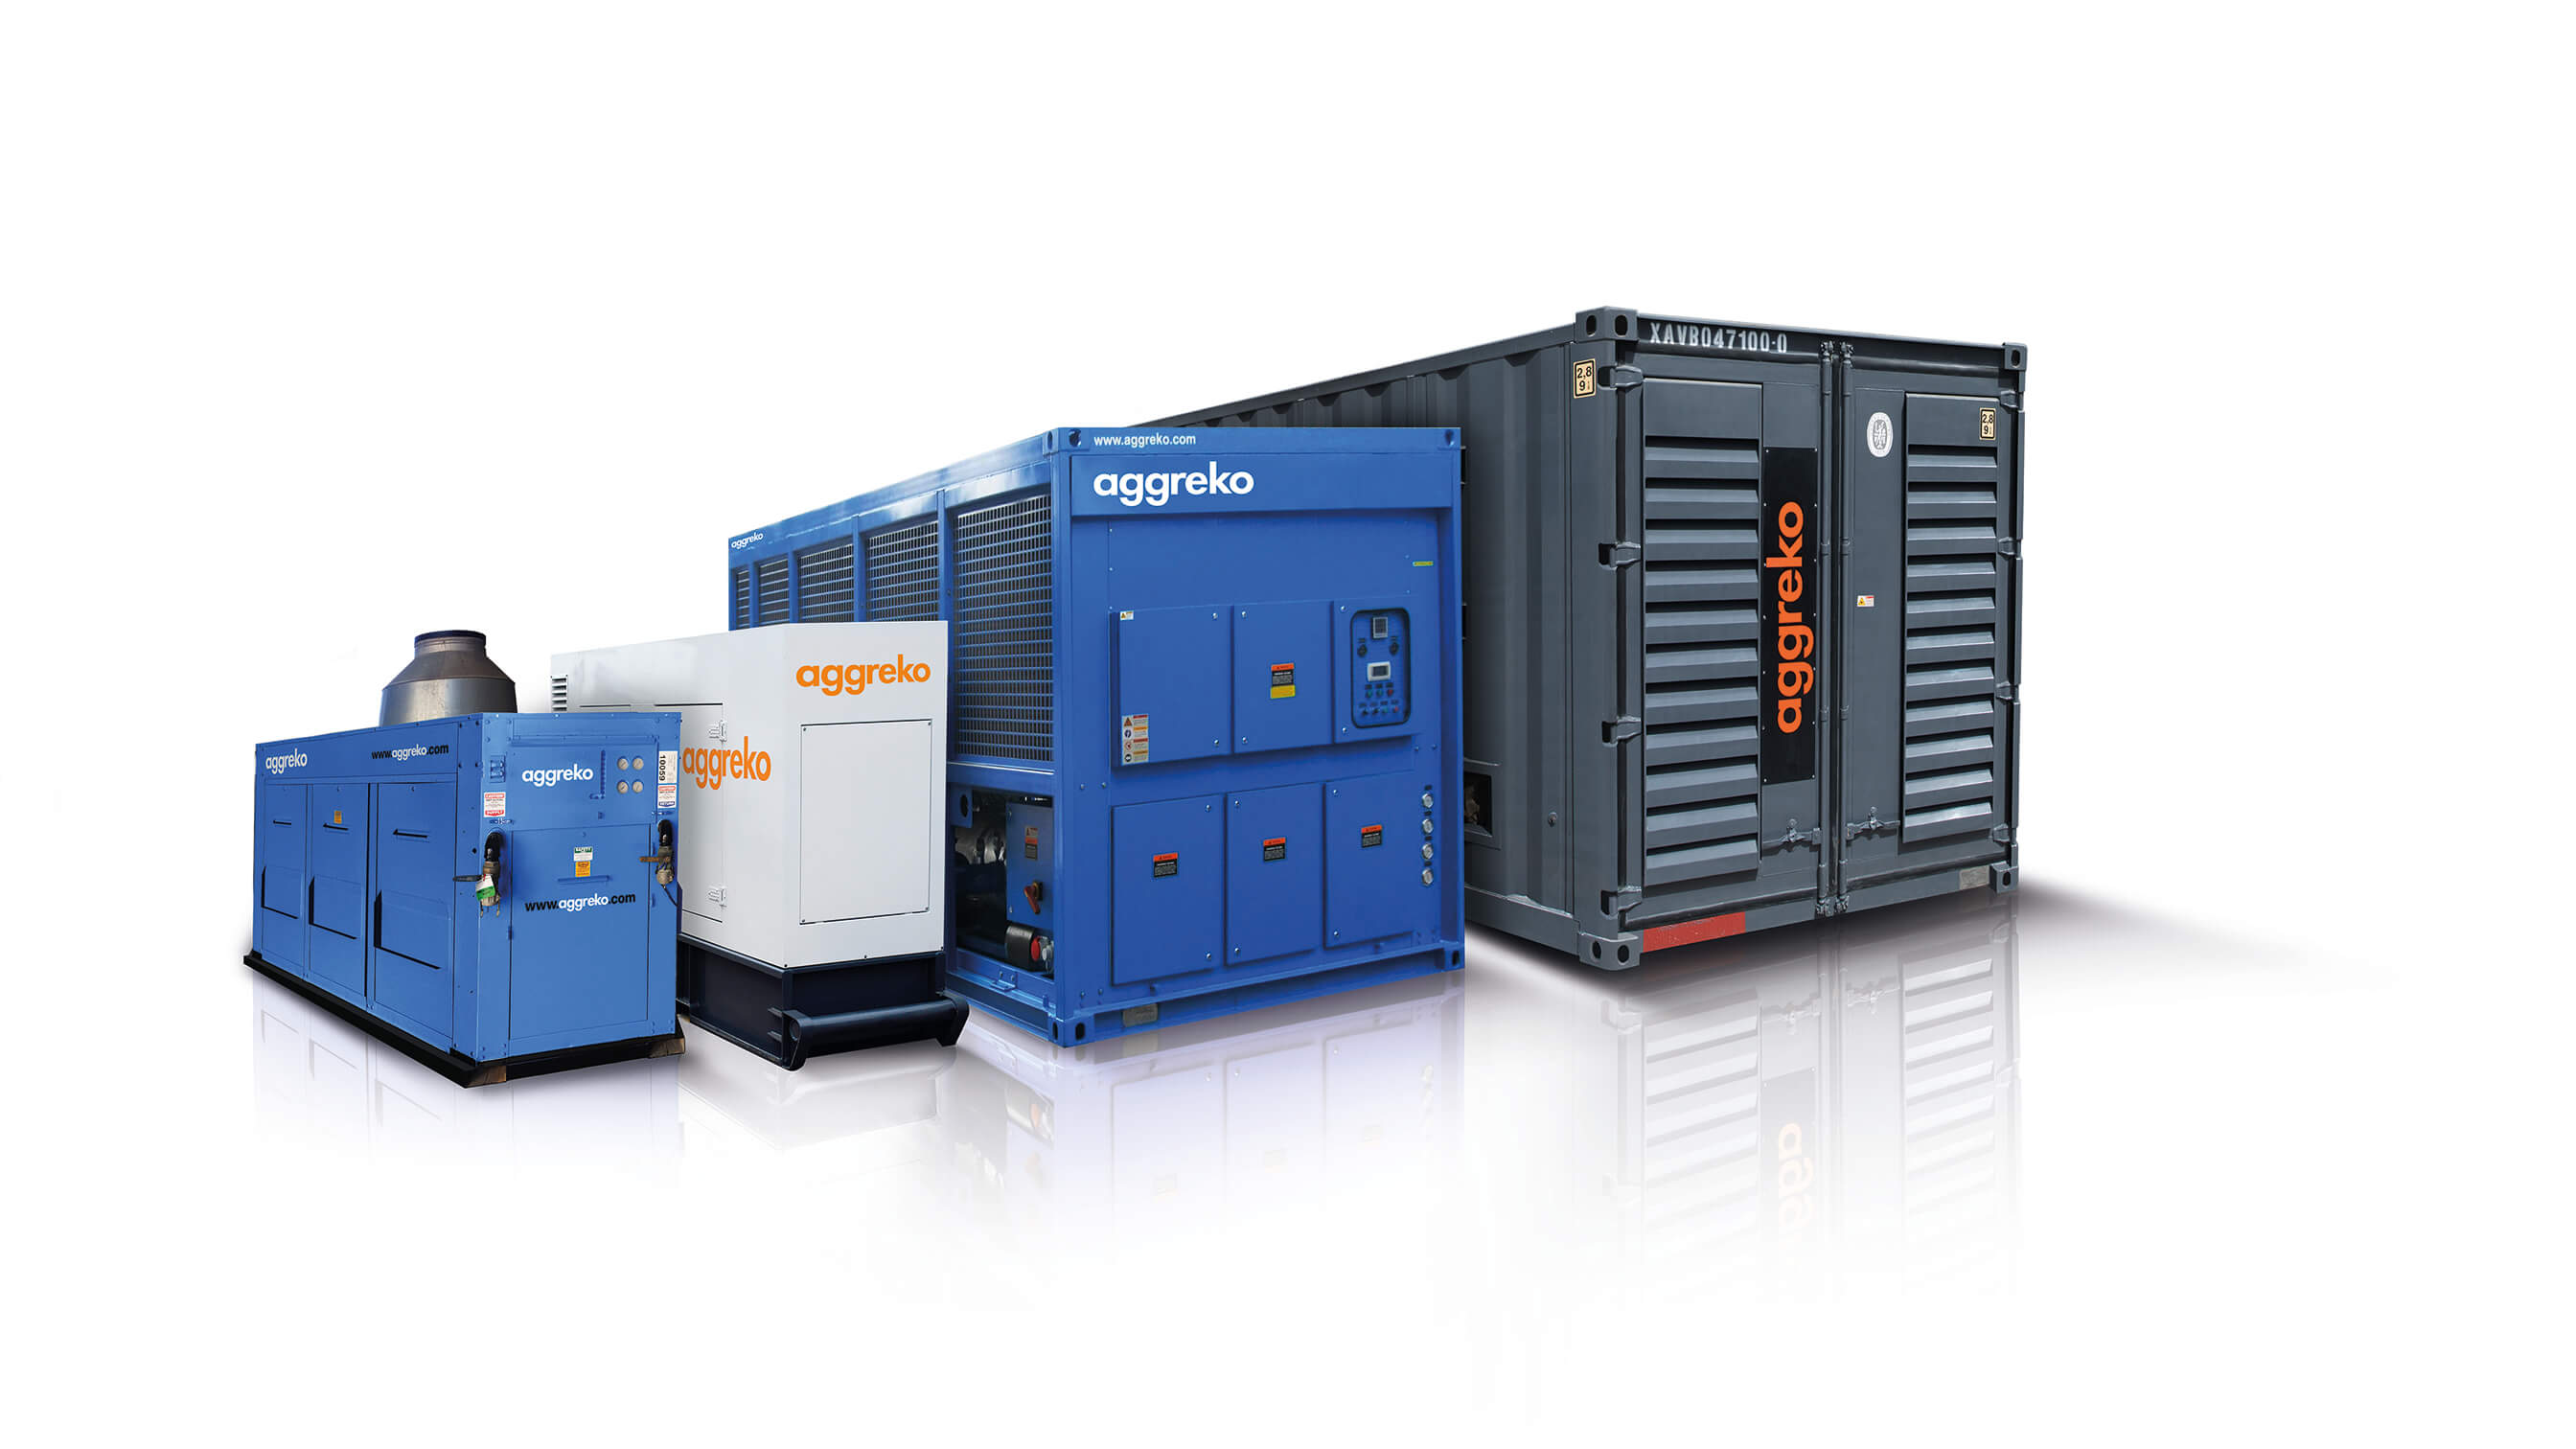 Aggreko products